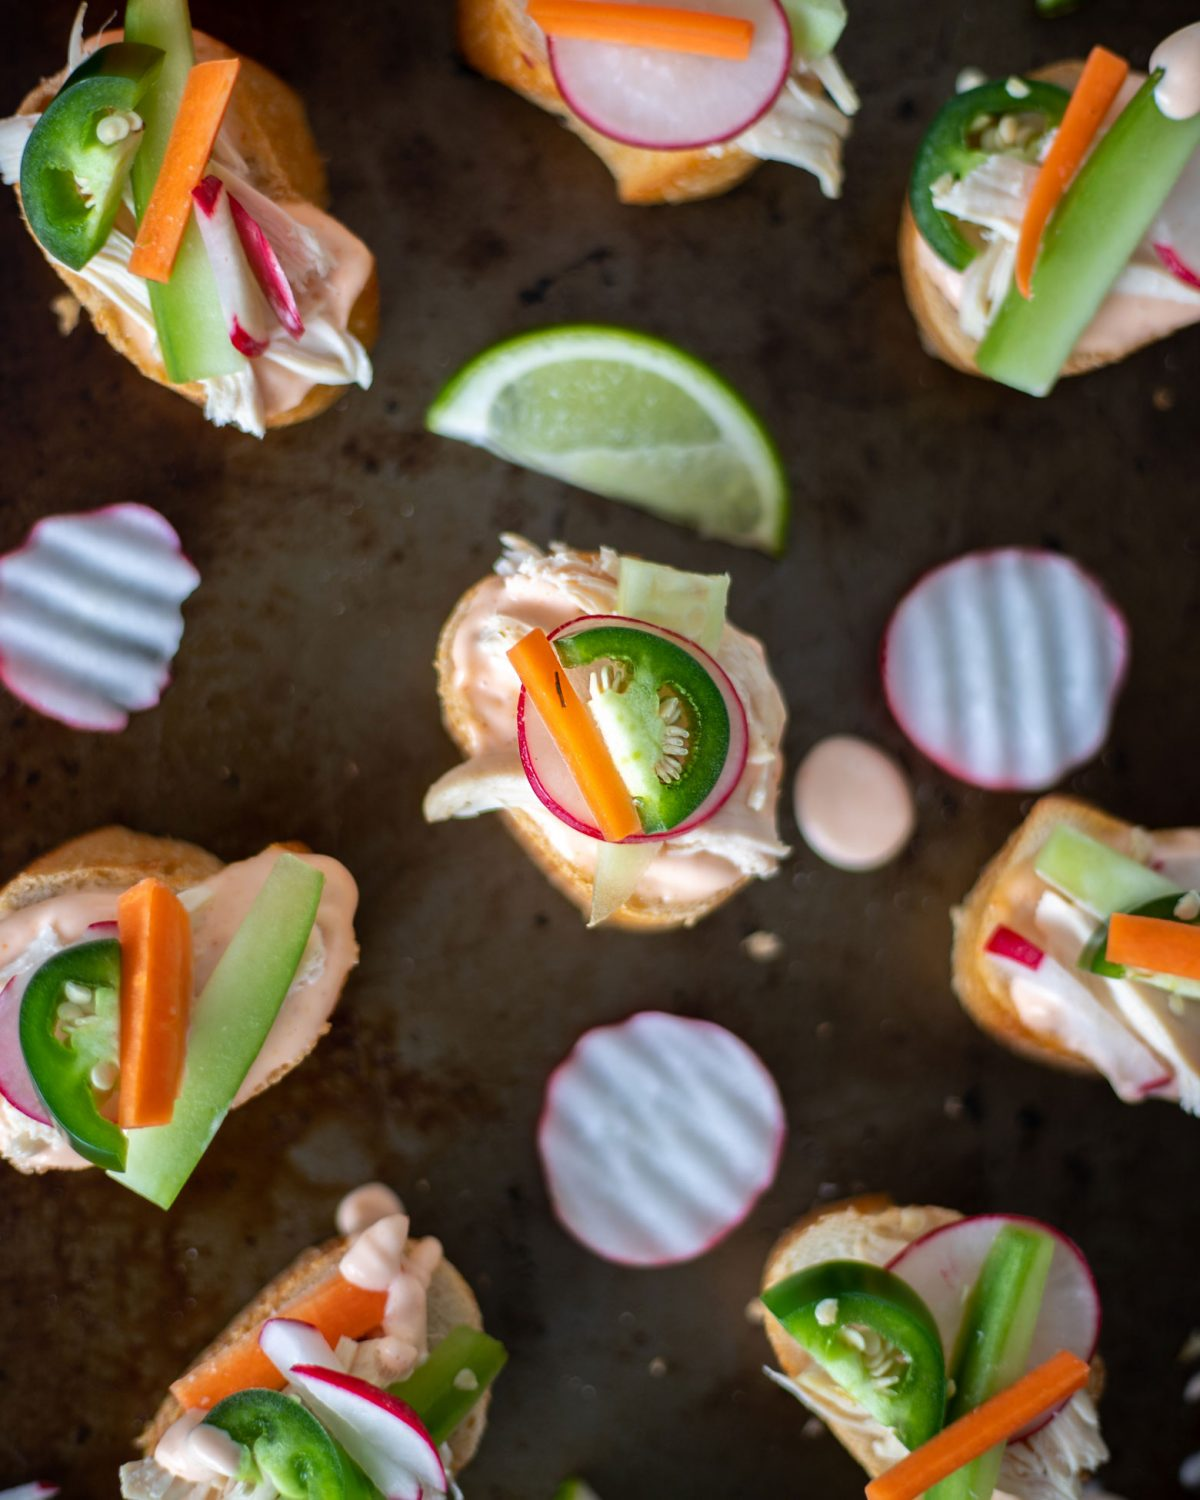 Mini Banh Mi sandwiches are the perfect appetizer for game day or party food. This take on the Veitmenease classic uses leftover rotisseriechicken to make a spicy finger food. #BanhMi #Gameday #Appetizer #PartyFood #MiniFood #PartyRecipe #ElleTalk